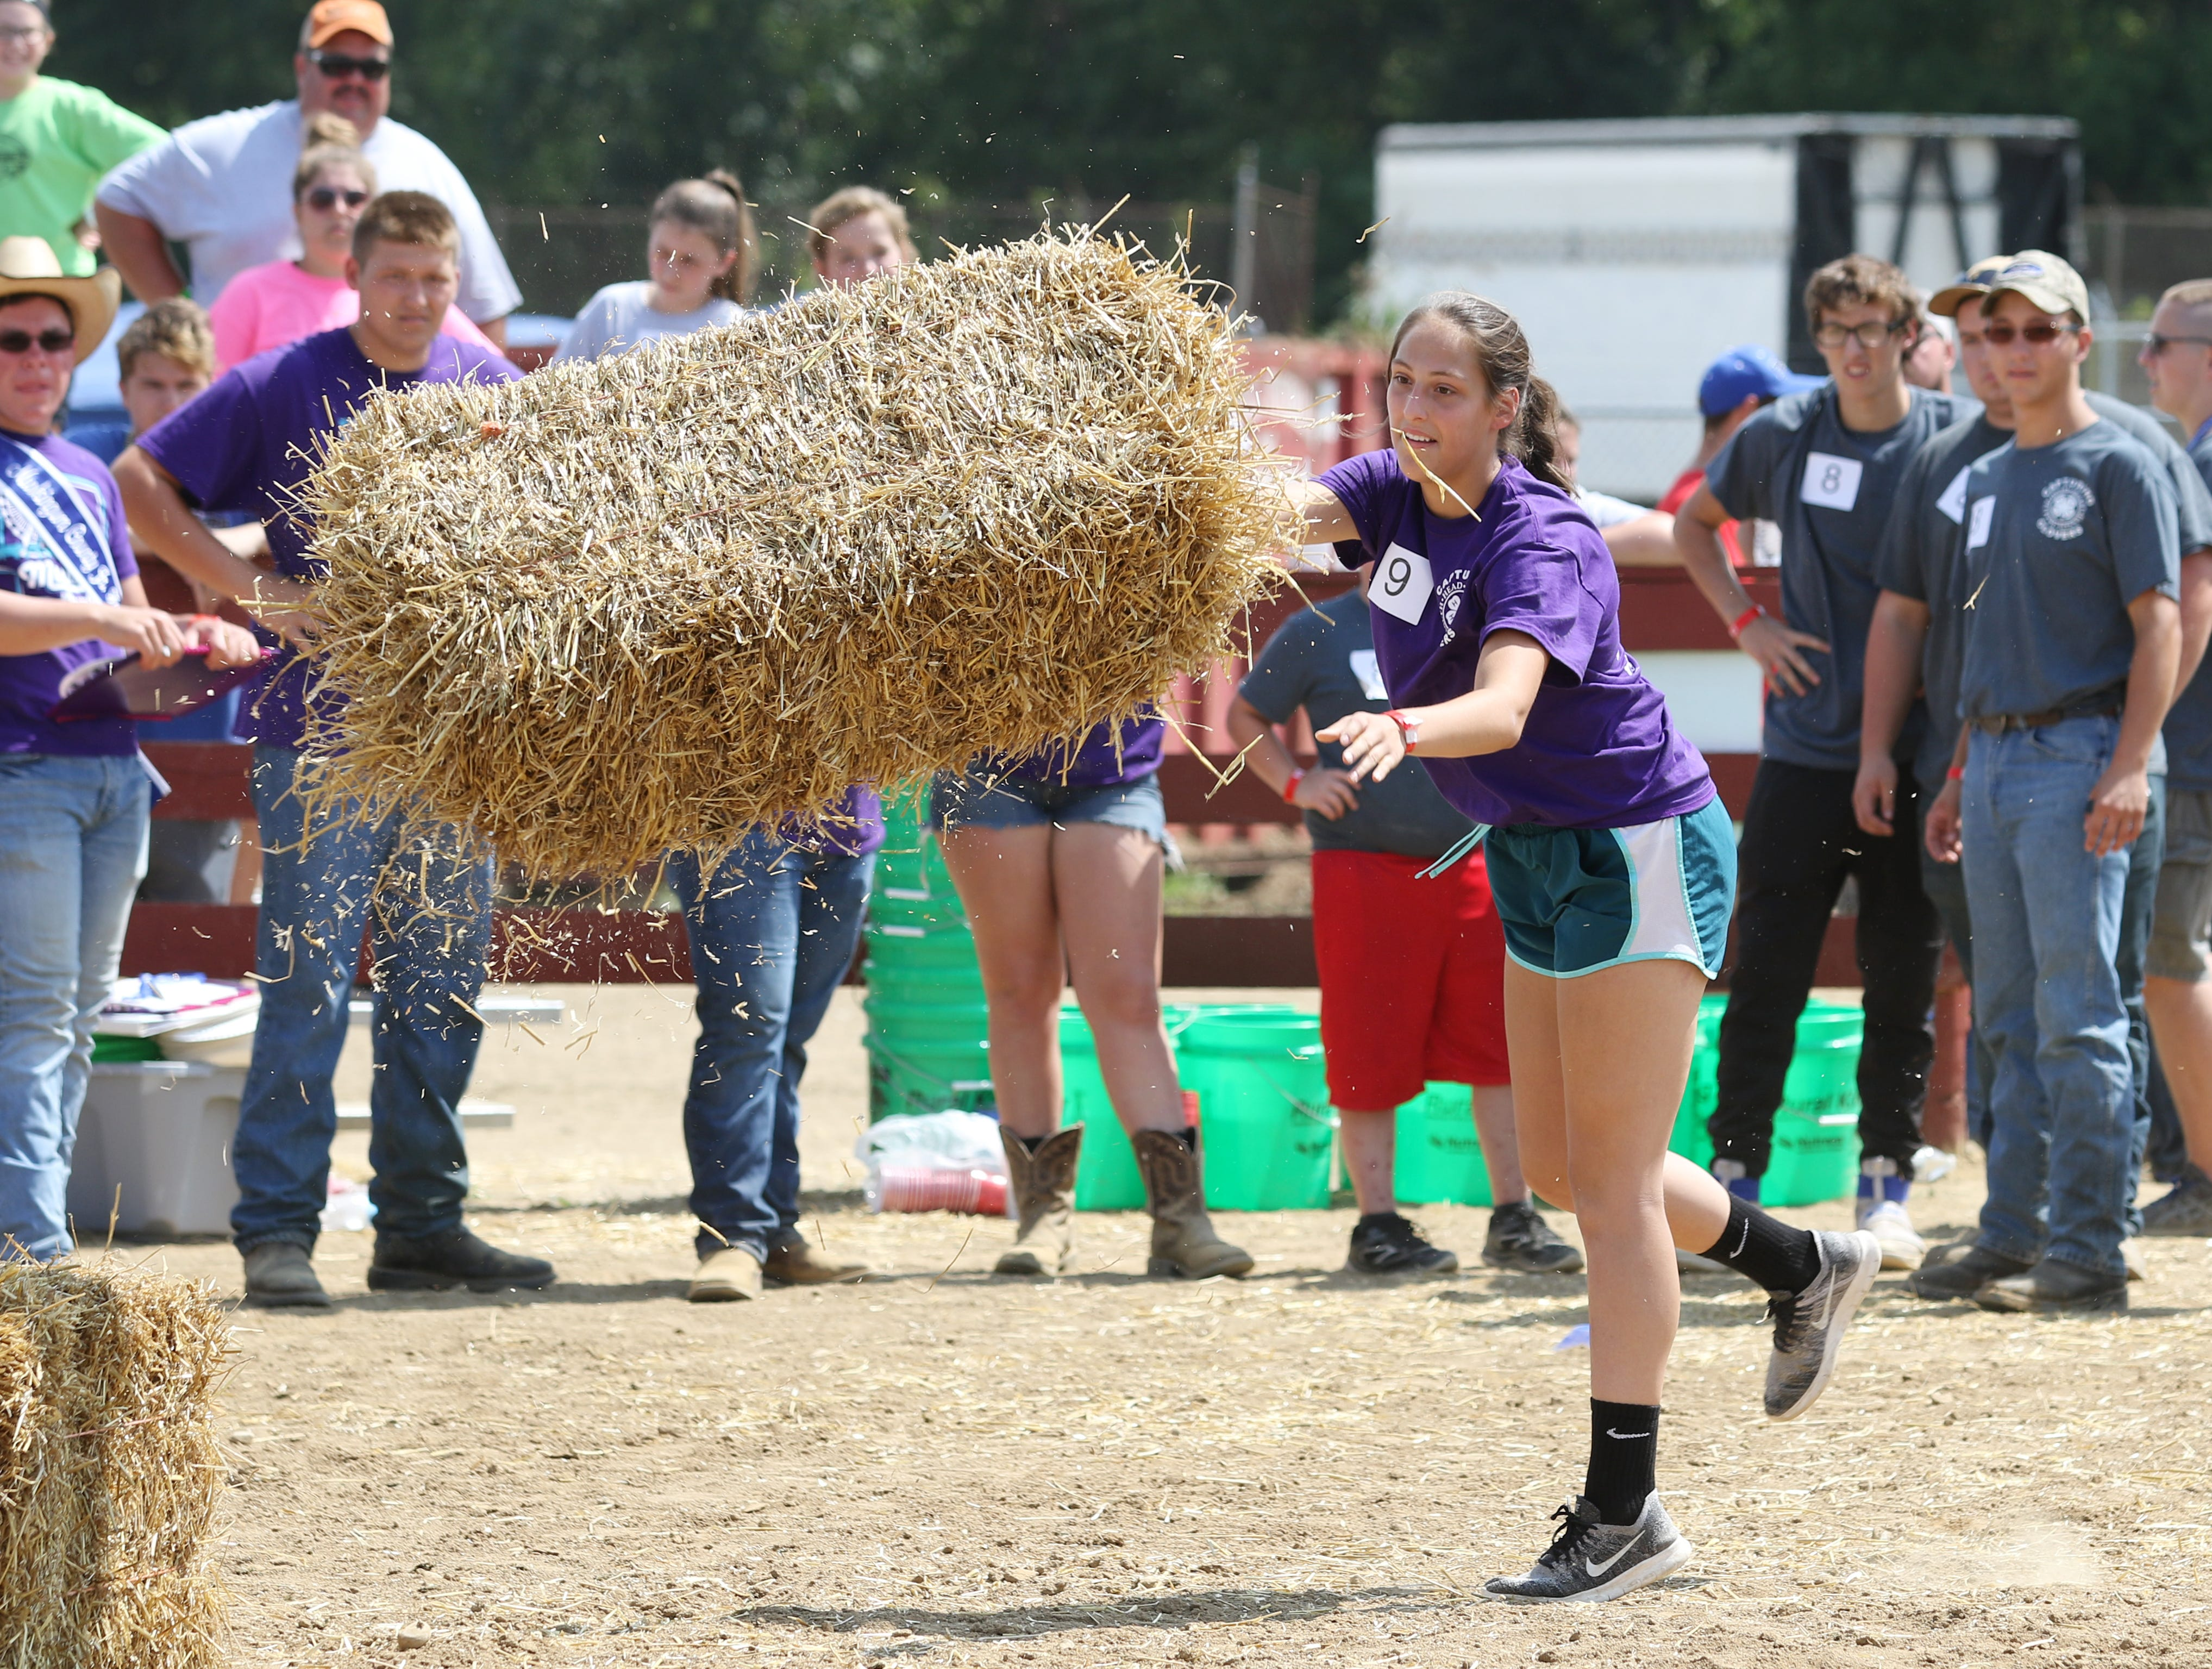 The Junior Fair presented a new event on Monday, the Farm Chore Olympics. The event started with the pooper scooper task, then a hay bale toss, followed by an egg toss, water relay, and finally a water melon seed spitting contest.